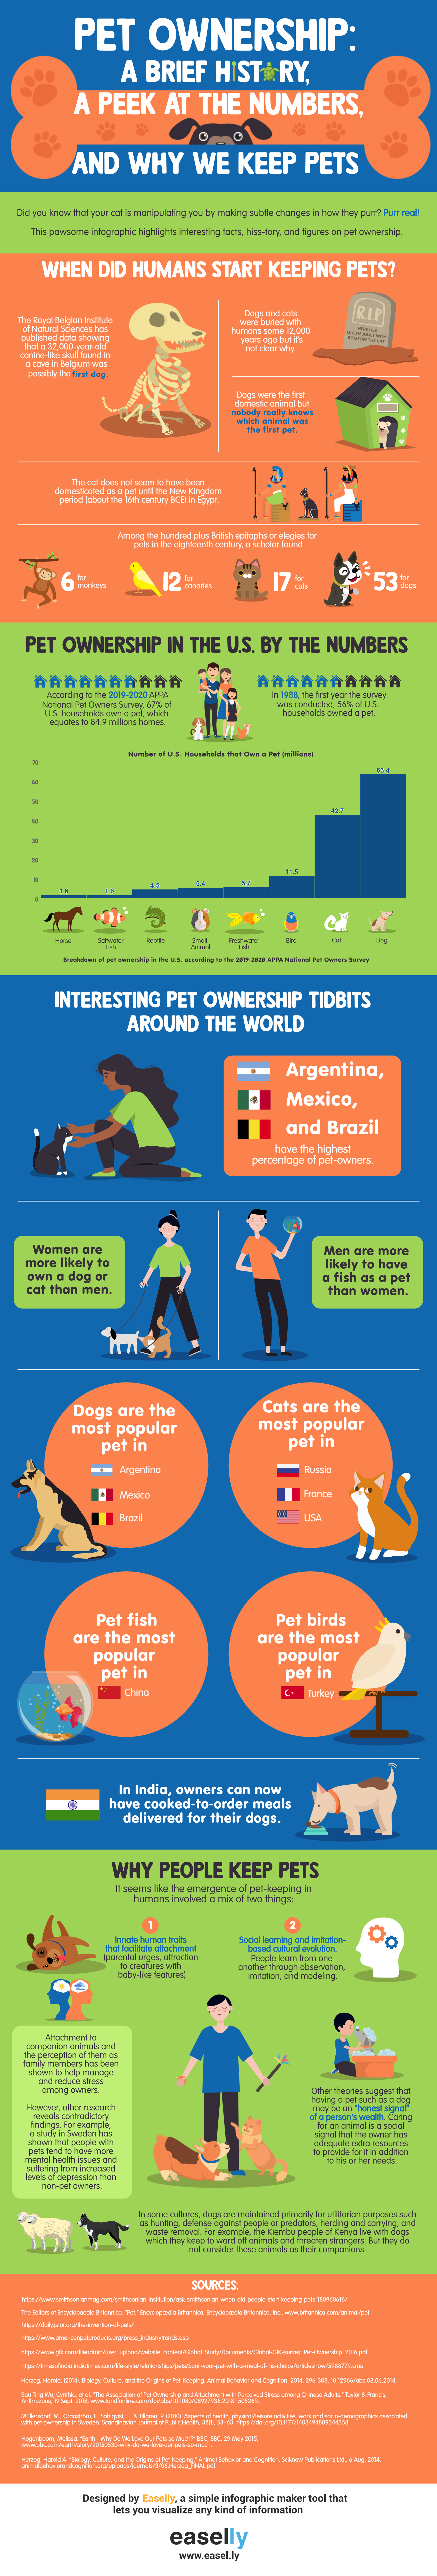 Pet Ownership Statistics Infographic